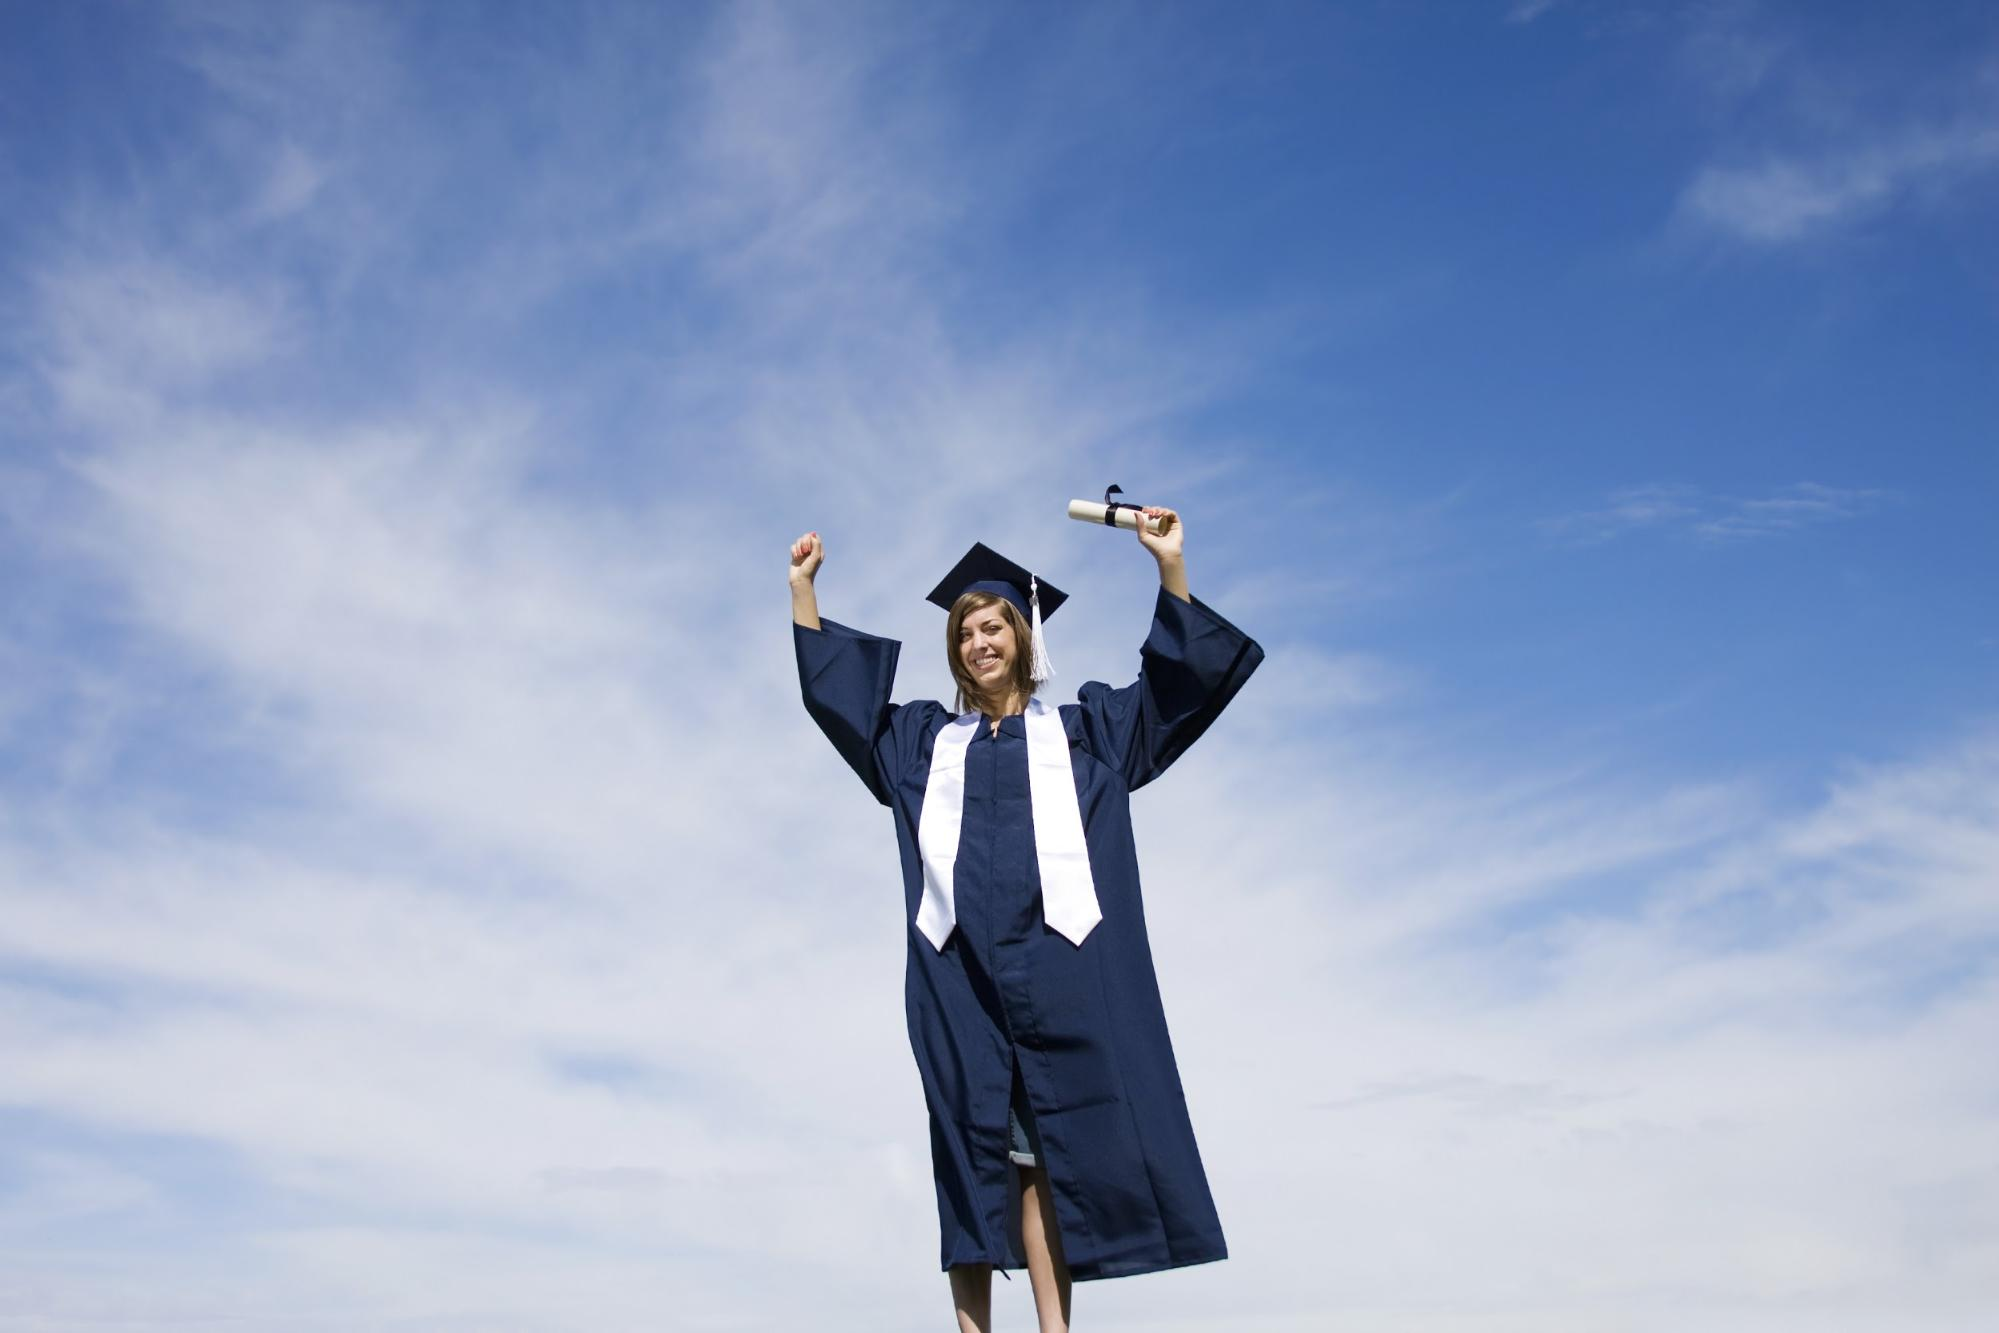 Associate's degree: Female student wearing a gown celebrating her graduation